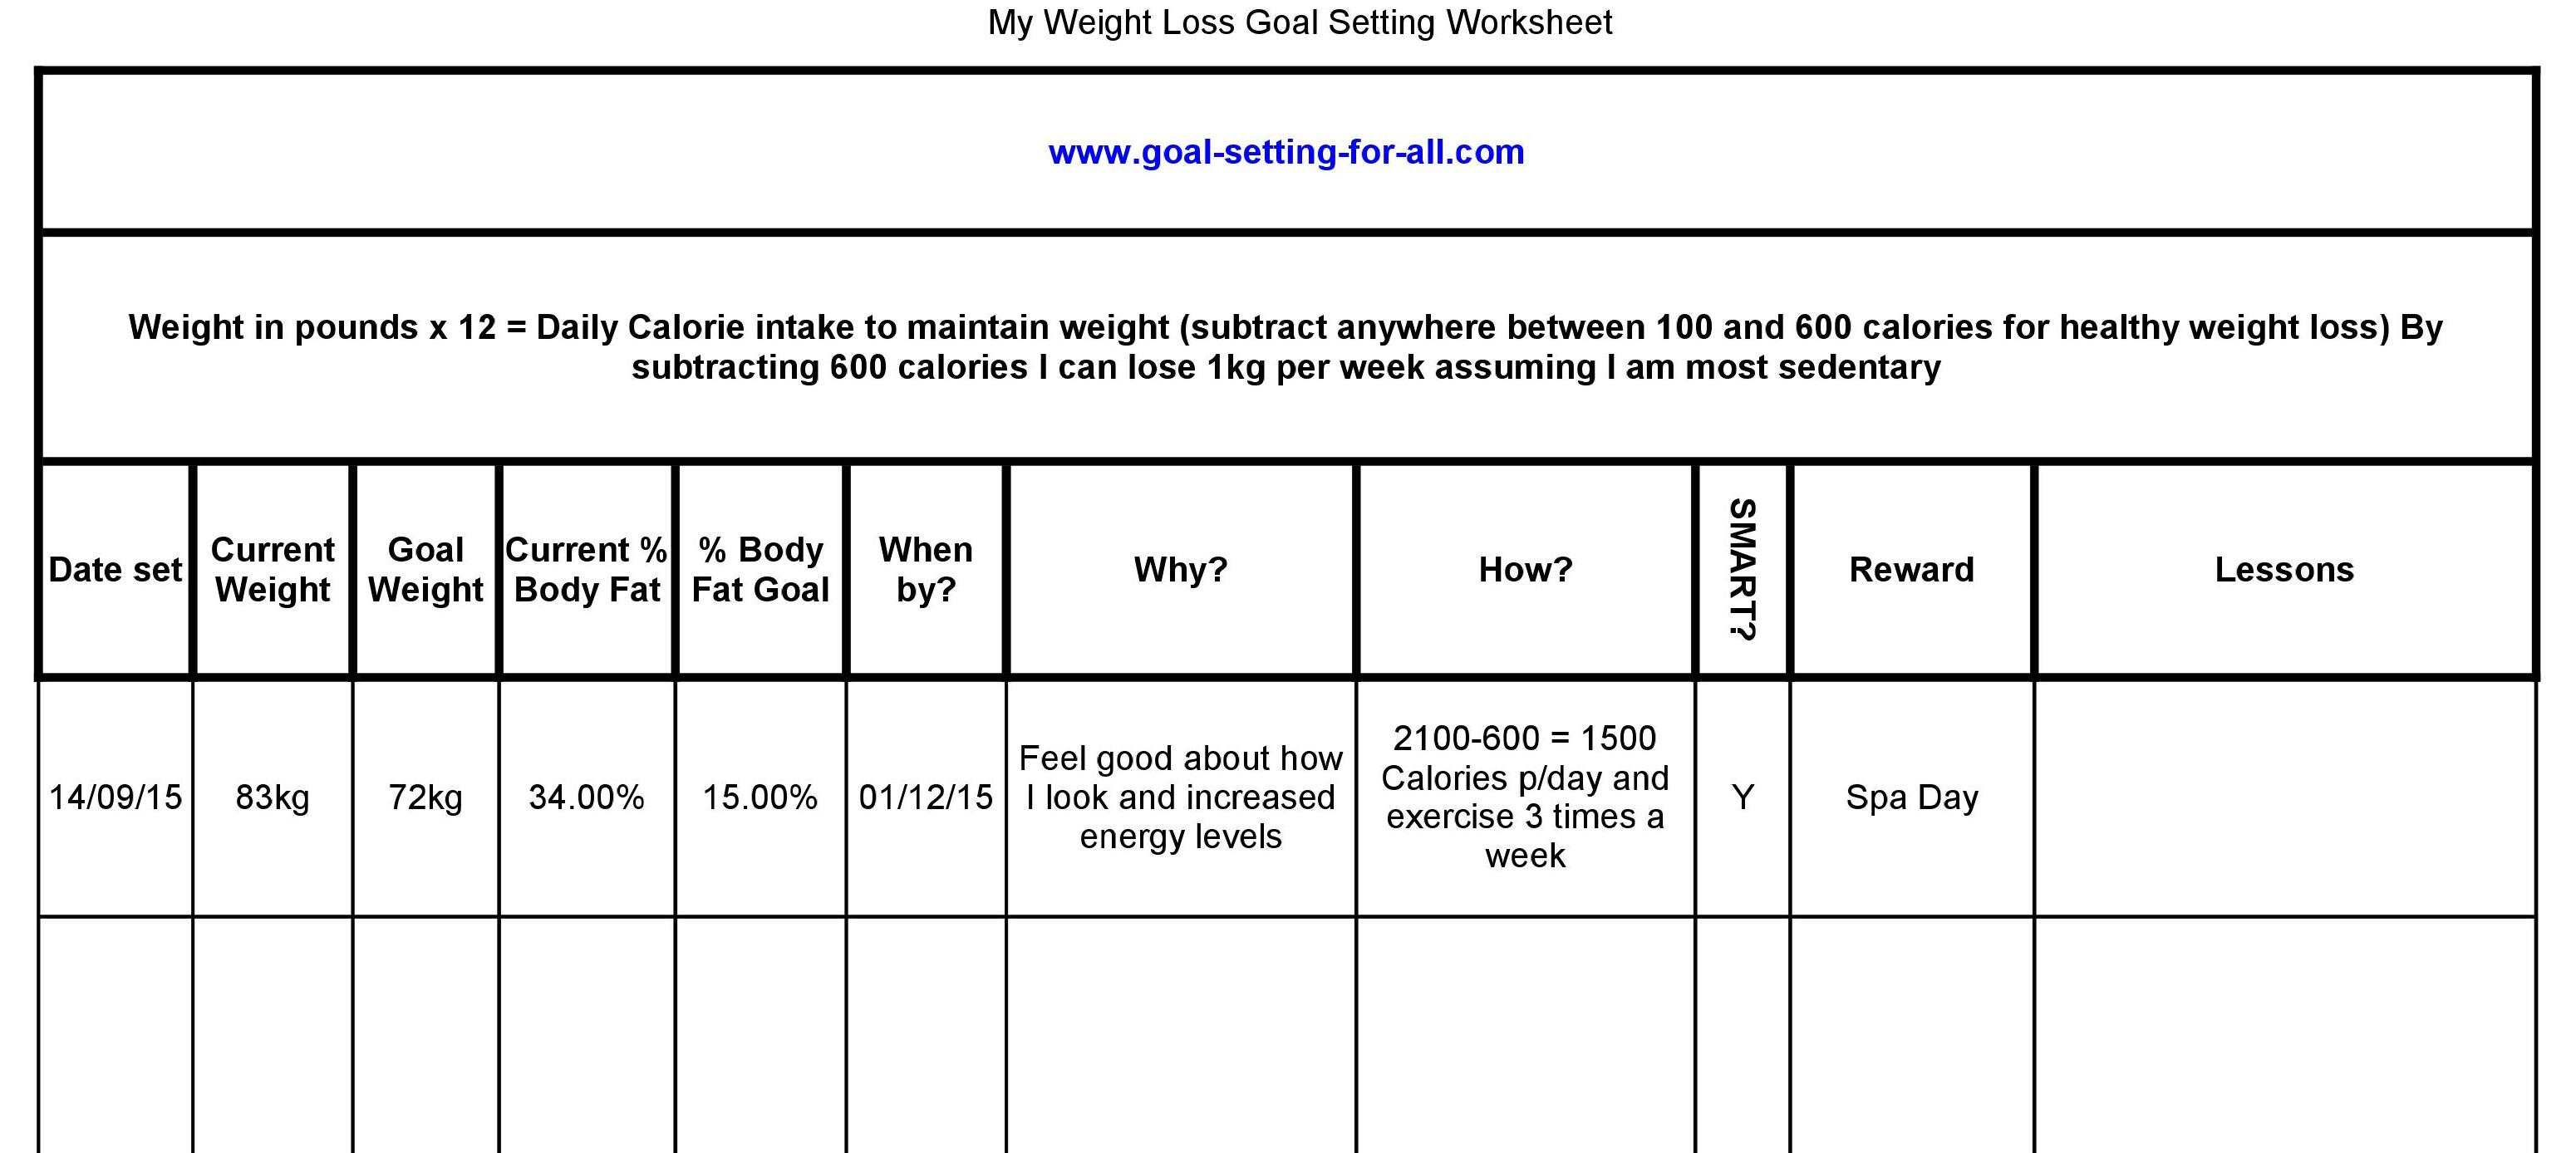 worksheet Setting Worksheet weight loss goal setting worksheet